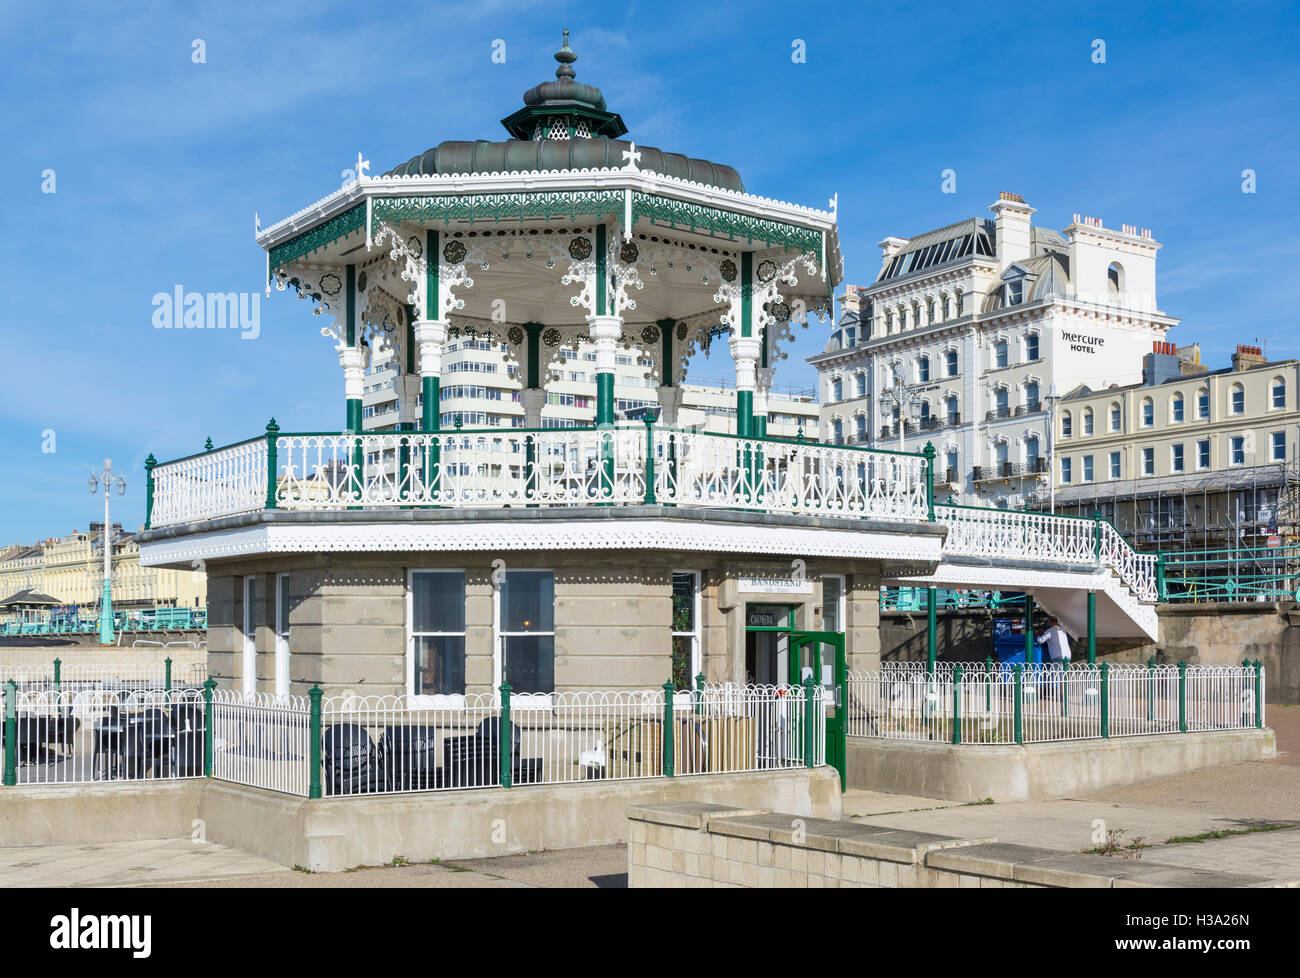 The Bandstand at Brighton on the seafront after restoration, in Brighton, East Sussex, England, UK. - Stock Image